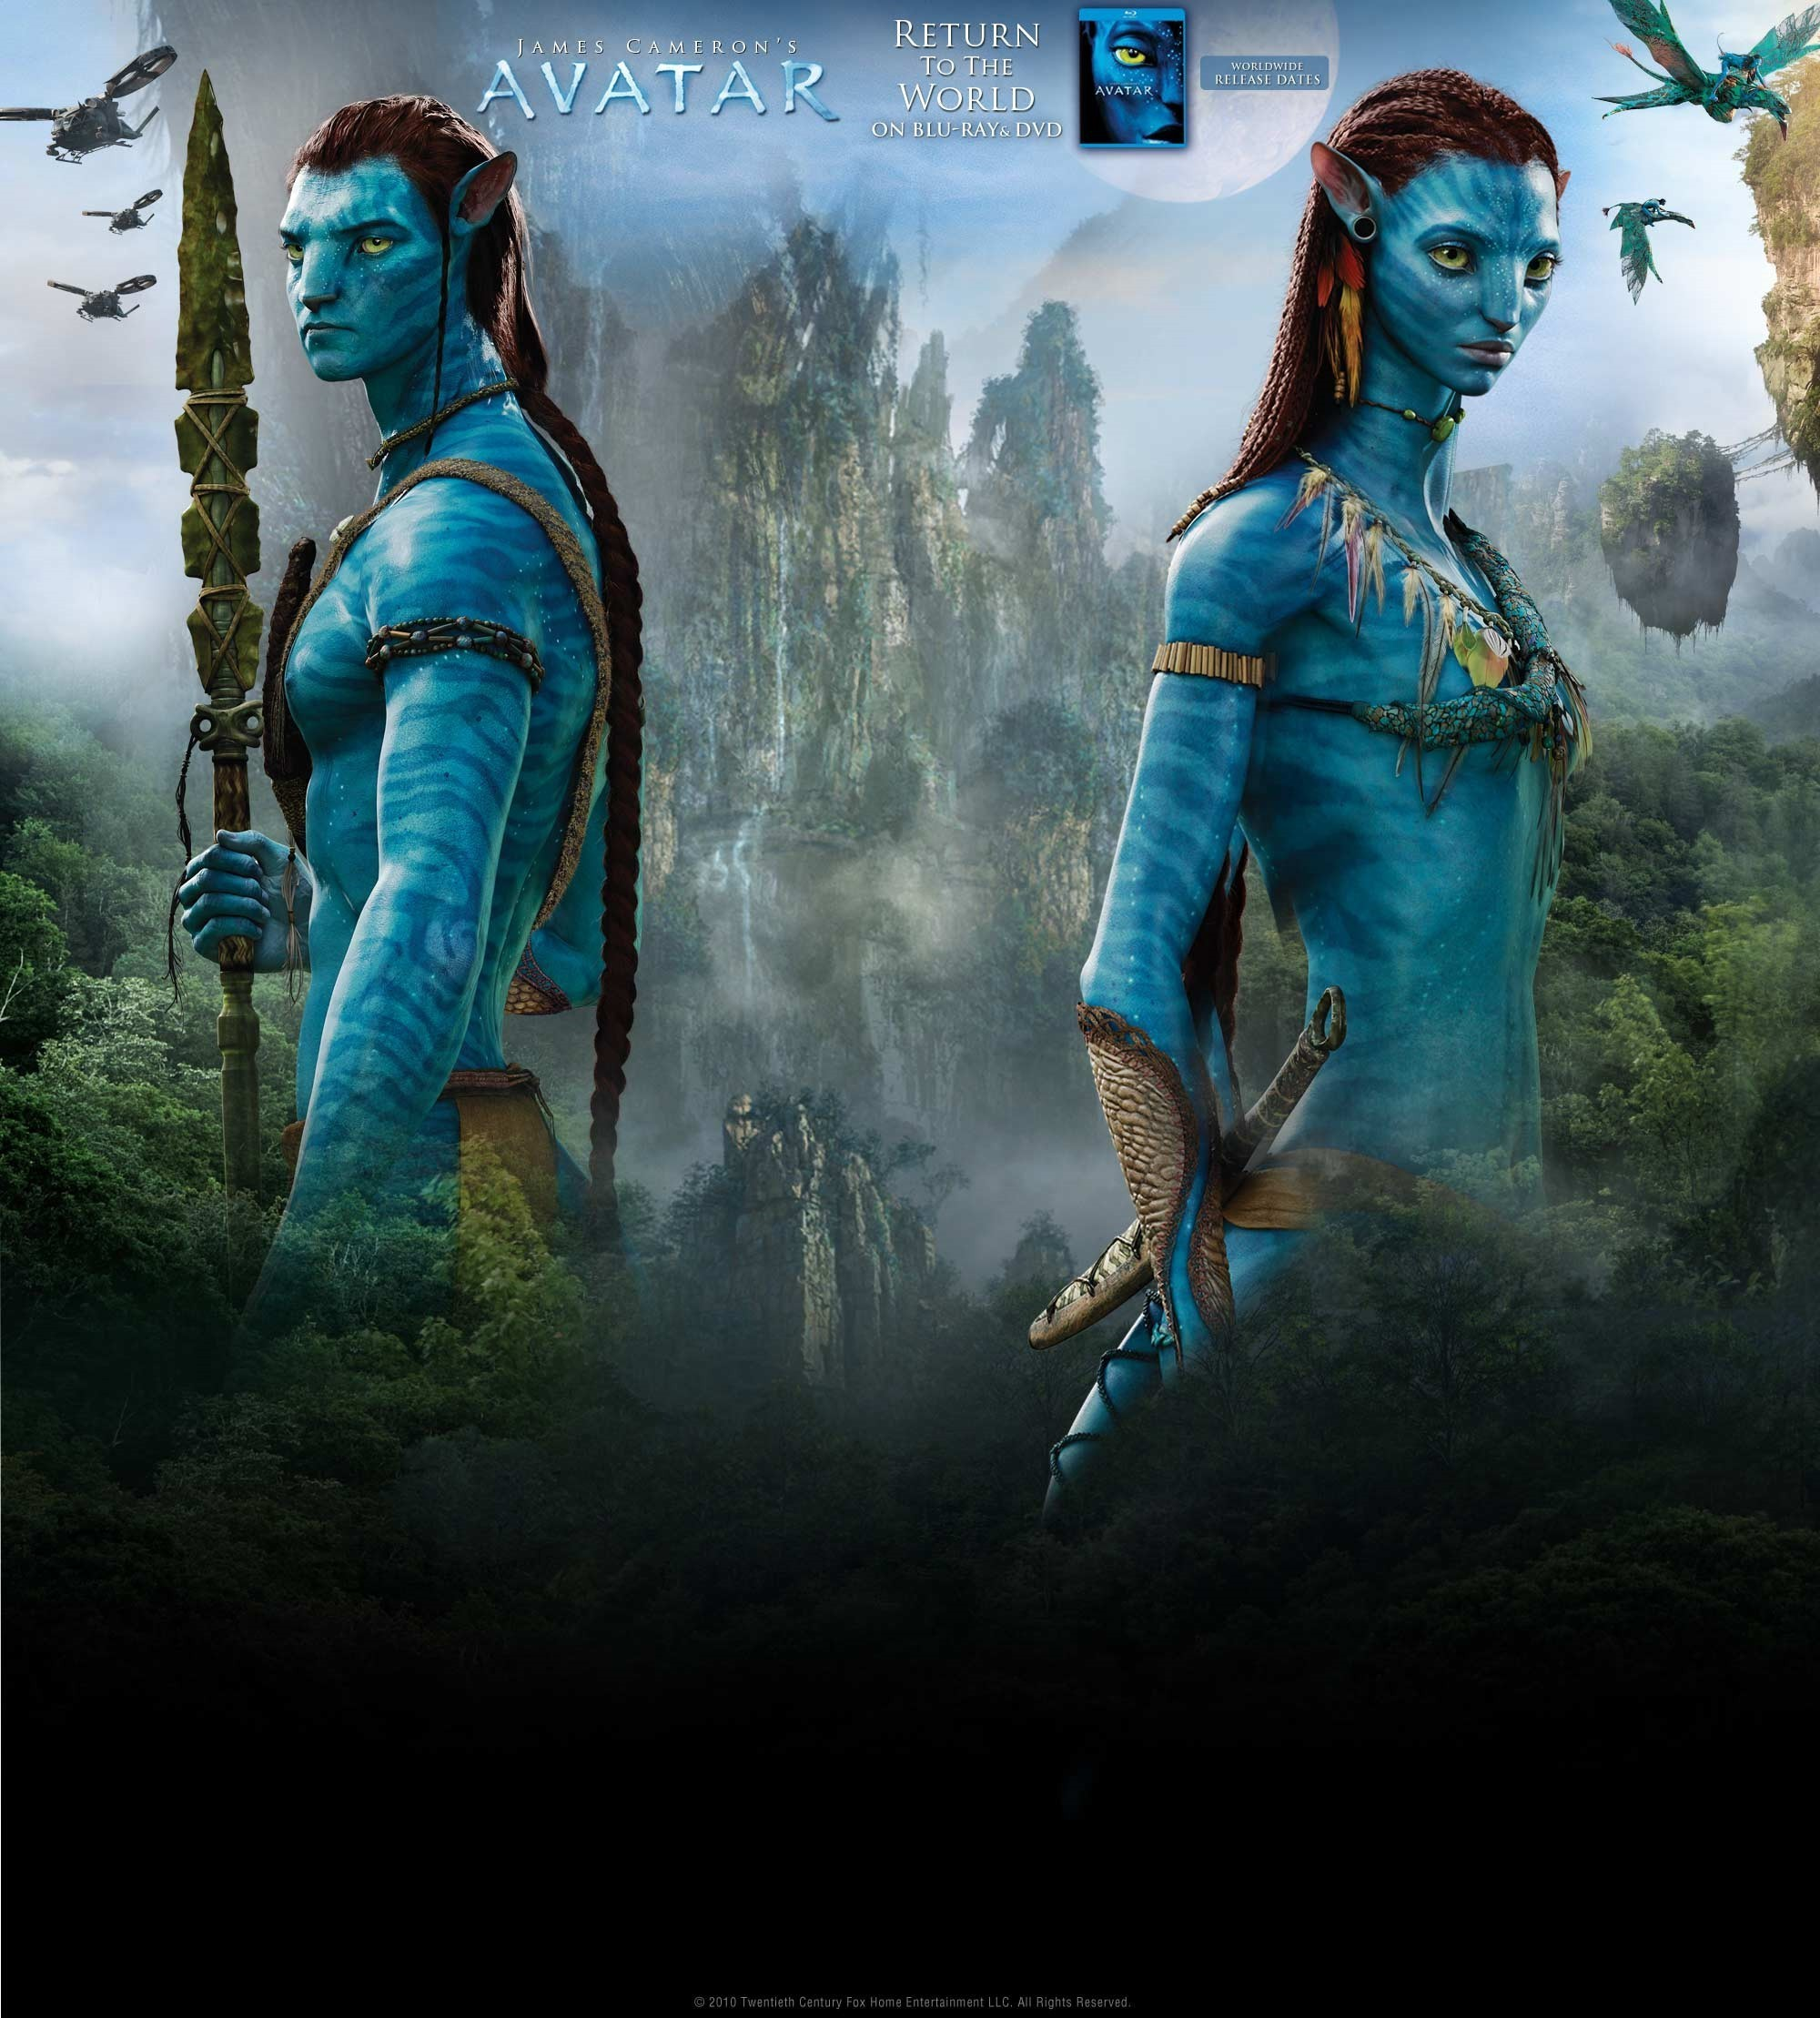 Pictures From Avatar: Avatar Blu-Ray & Dvd Promo